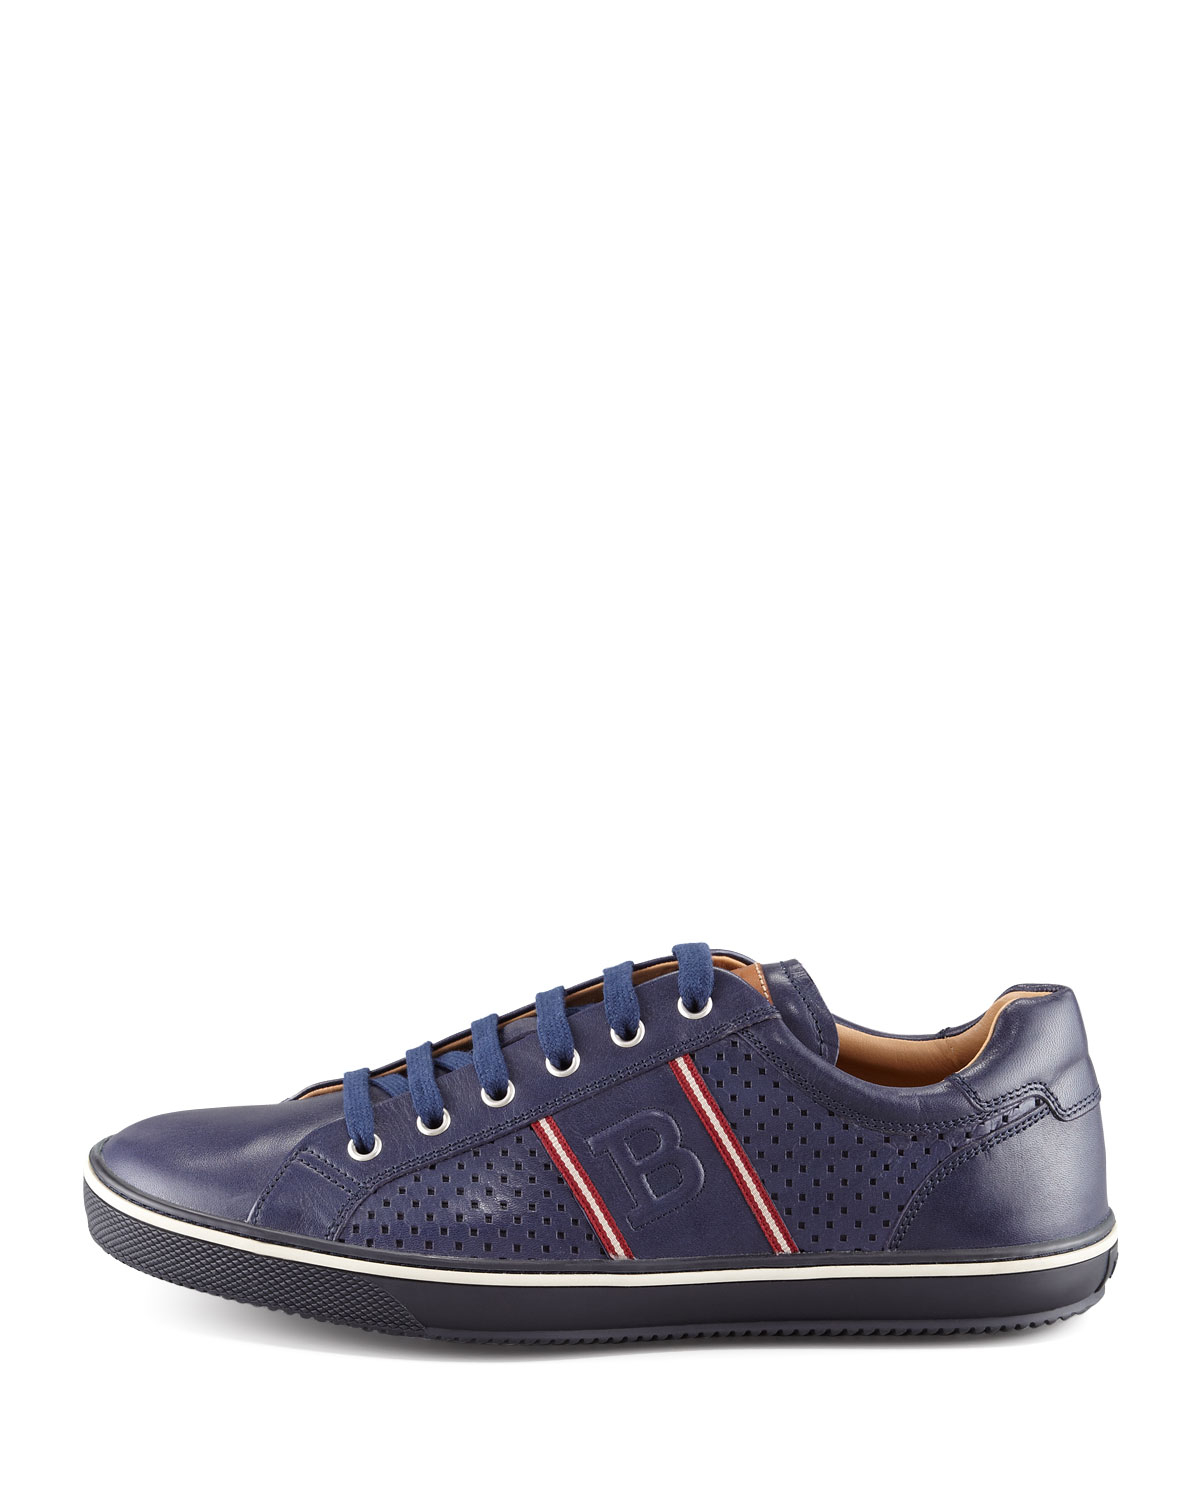 Lyst Bally Perforated Leather Logo Sneaker In Blue For Men